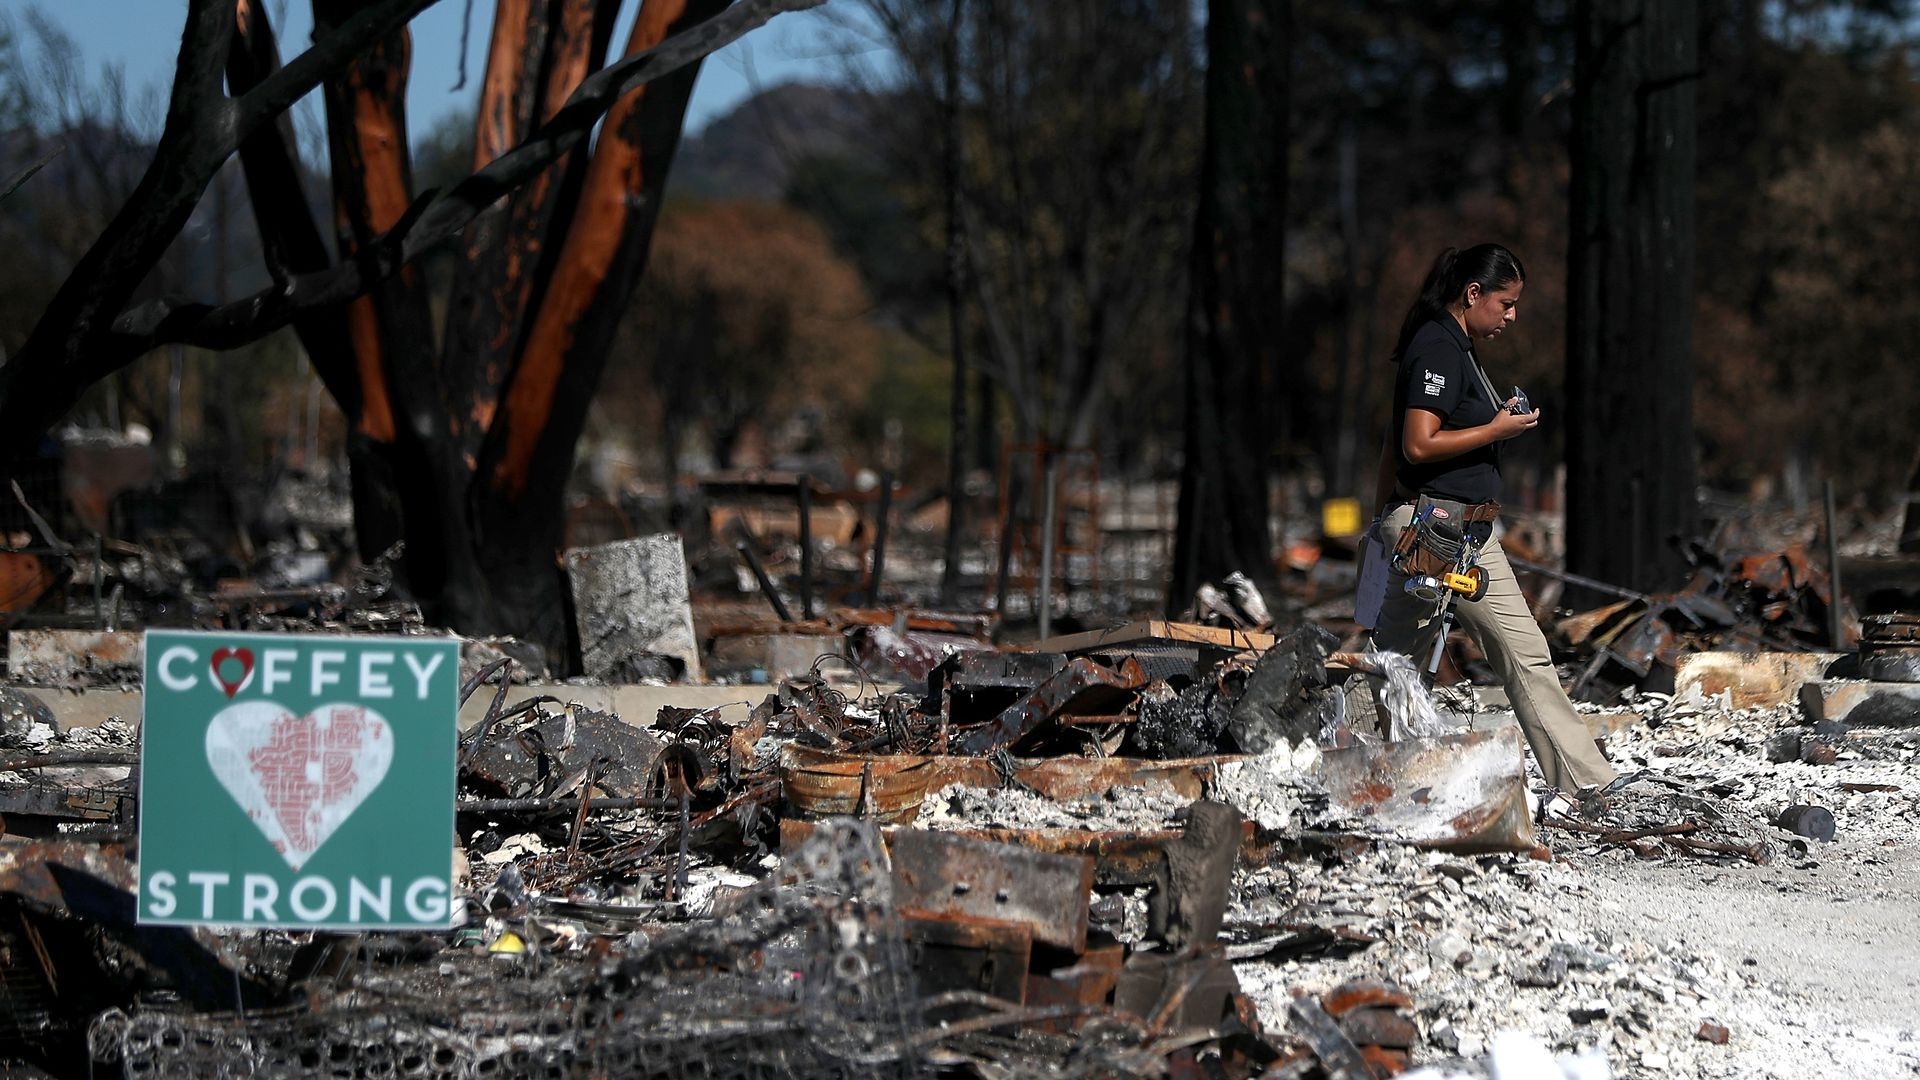 An insurance adjuster walks through a Coffey Park home that was destroyed by the Tubbs Fire on October 23, 2017 in Santa Rosa, California.